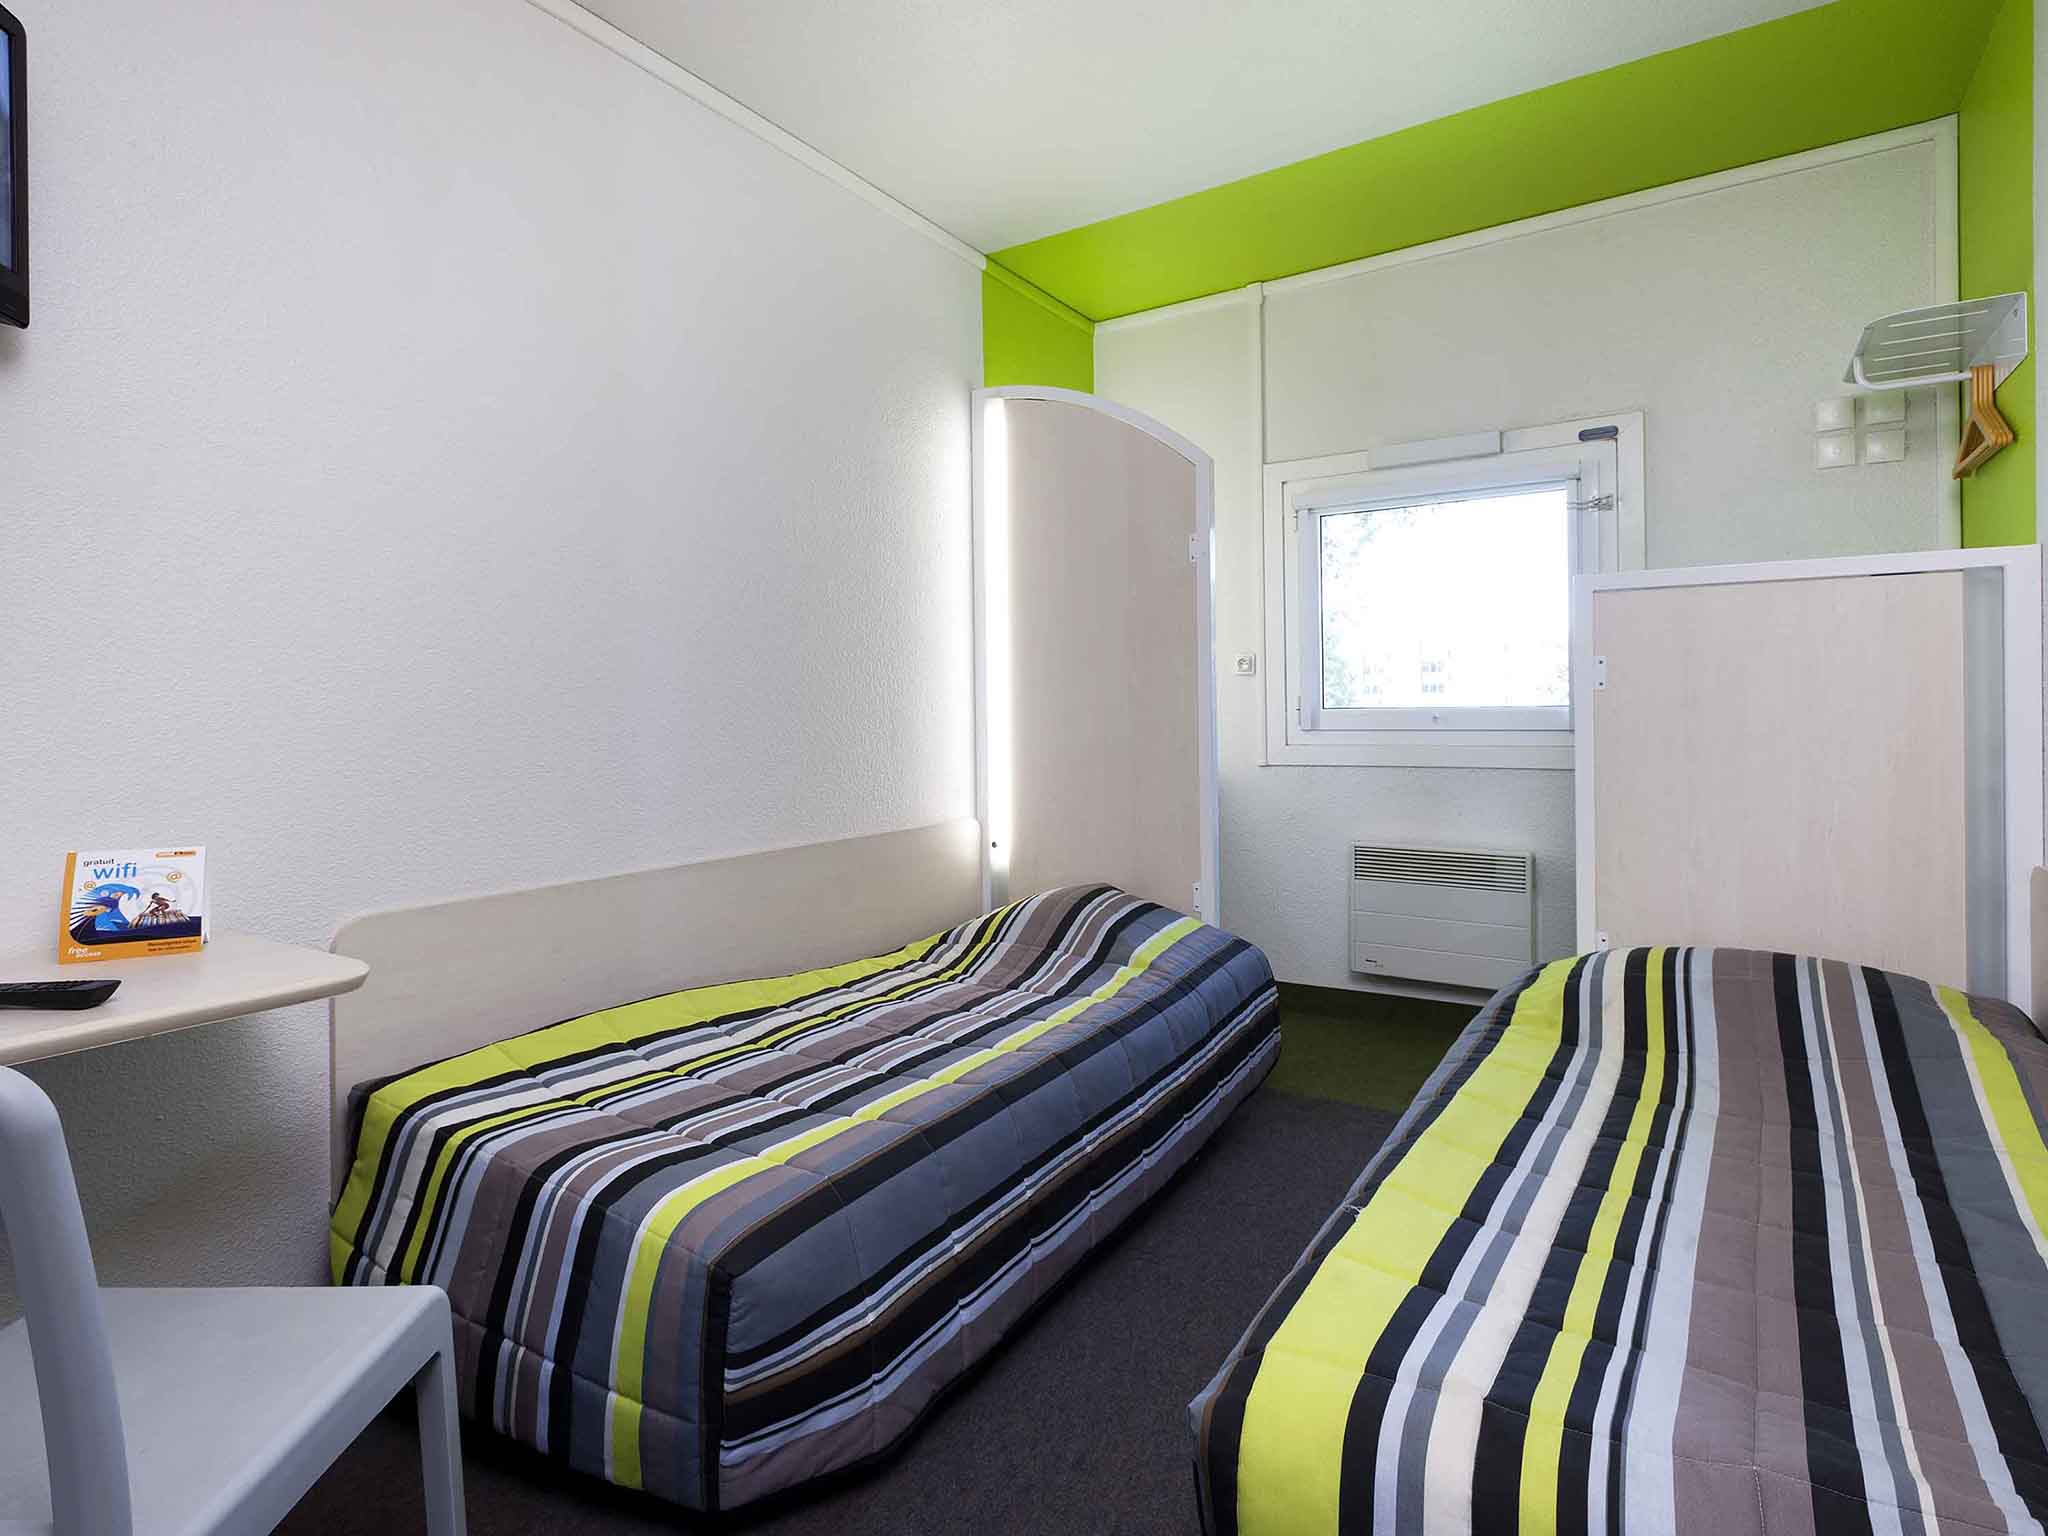 Otel – hotelF1 Valenciennes Douchy-les-Mines